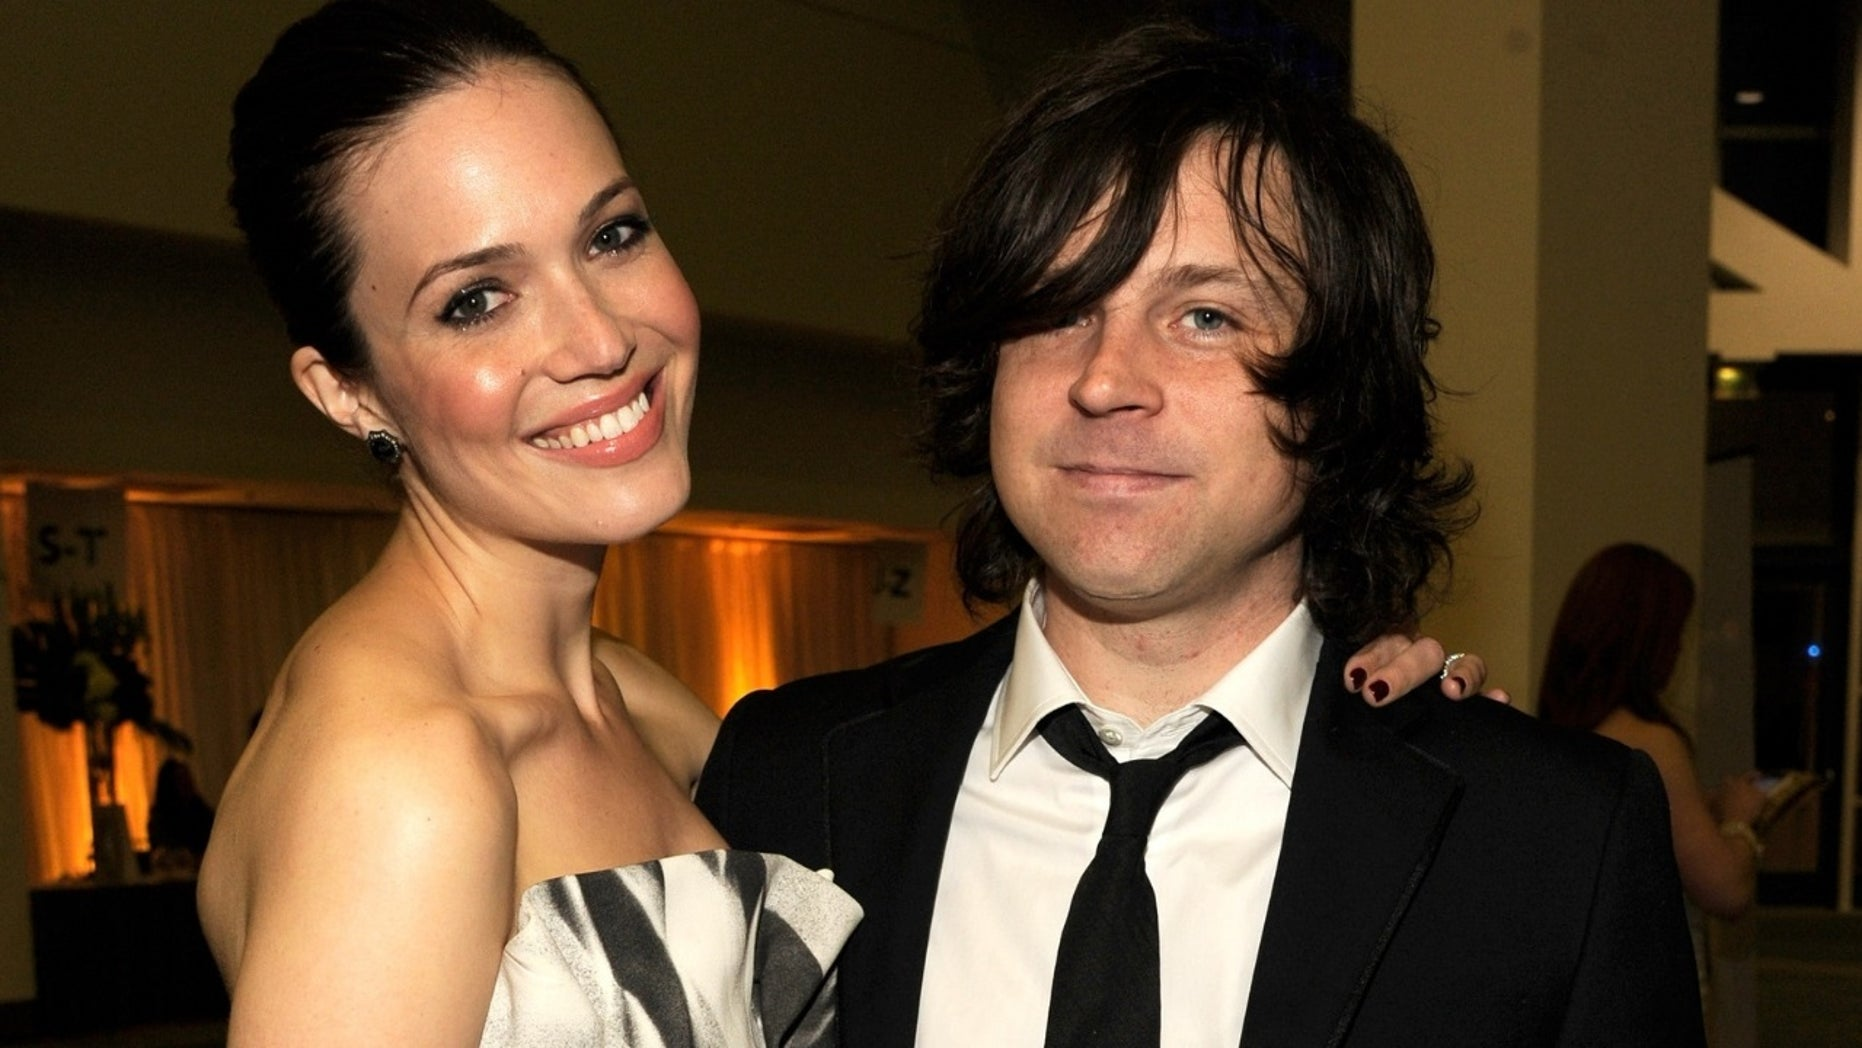 Mandy Moore said she has felt supported since she spoke out last month about the alleged emotional abuse she suffered from her ex-husband Ryan Adams.